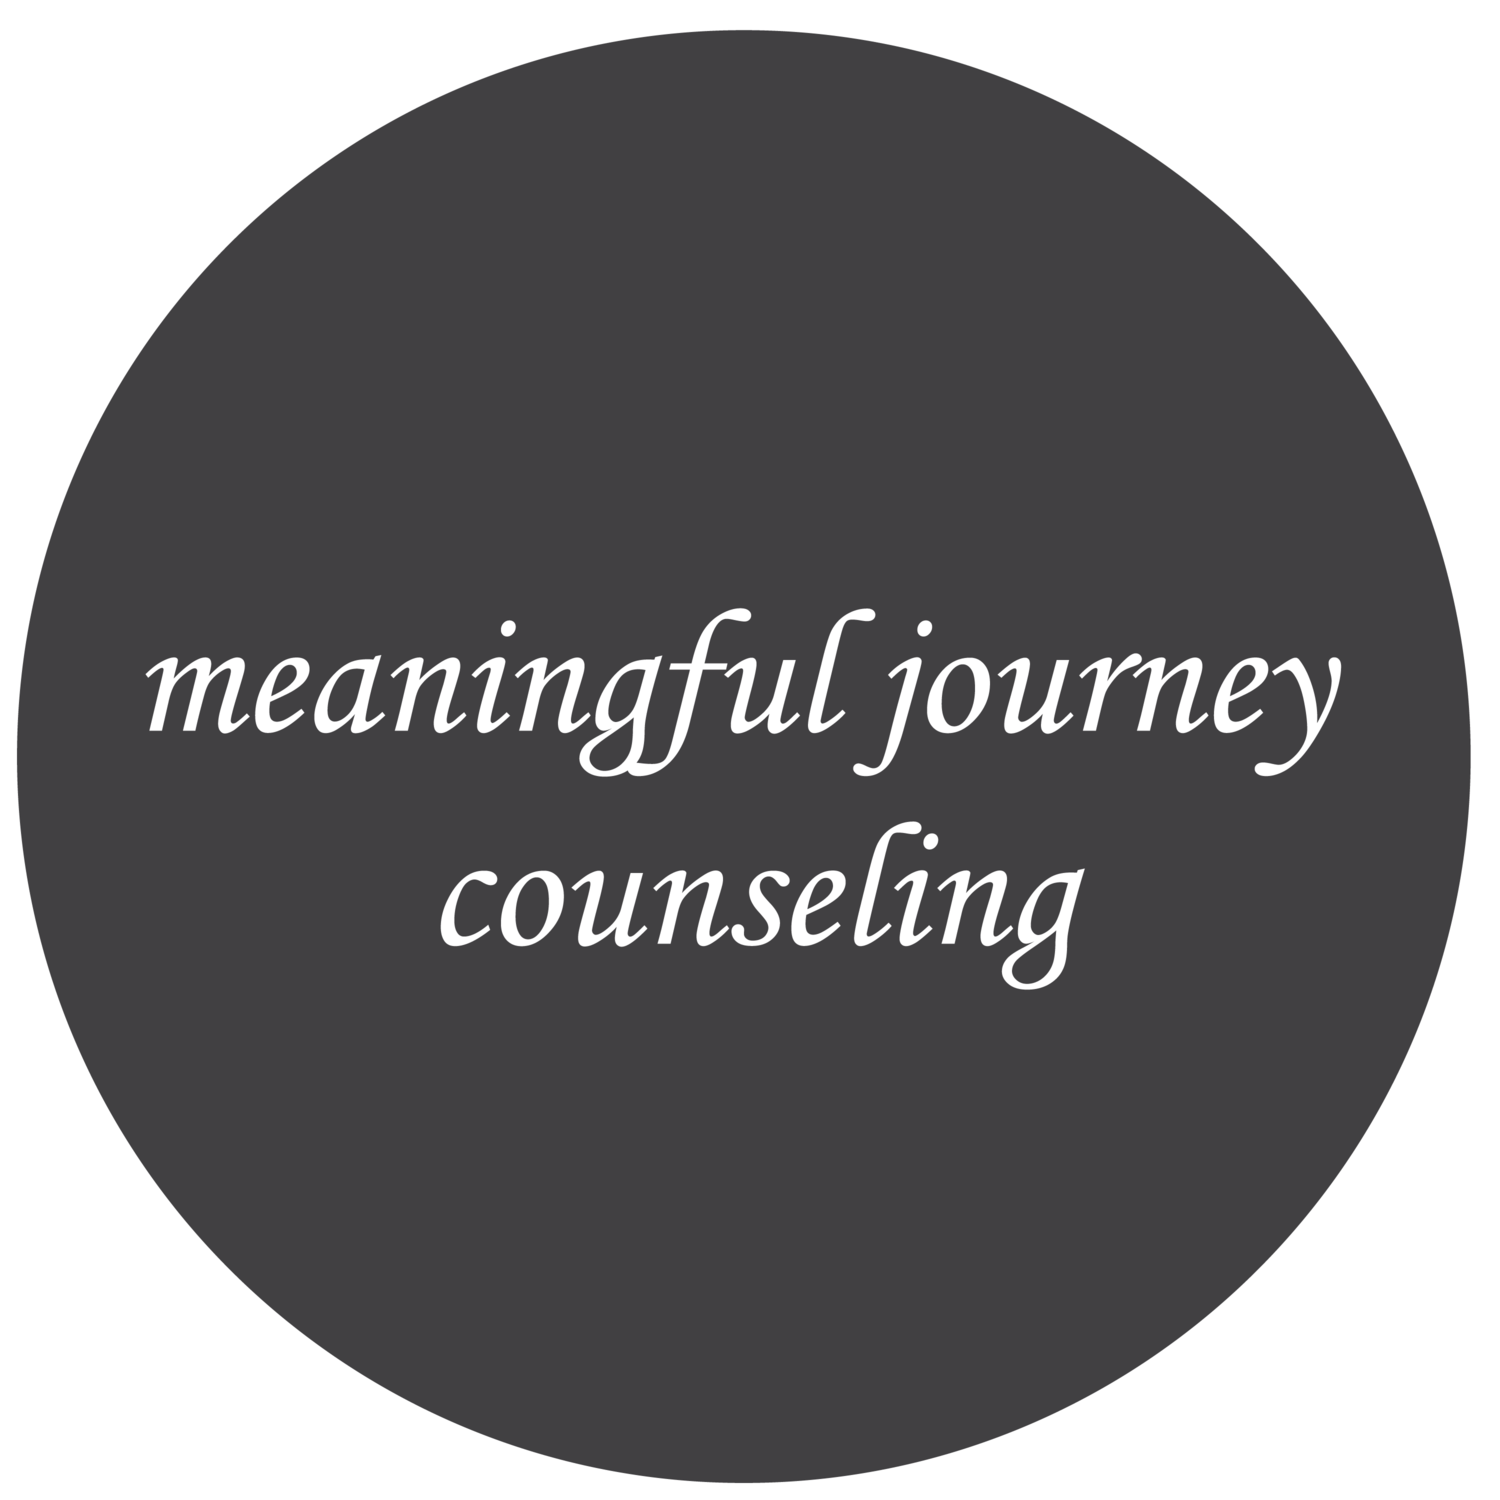 Couples Counseling & Marriage Counseling in North Seattle - Meaningful Journey Counseling